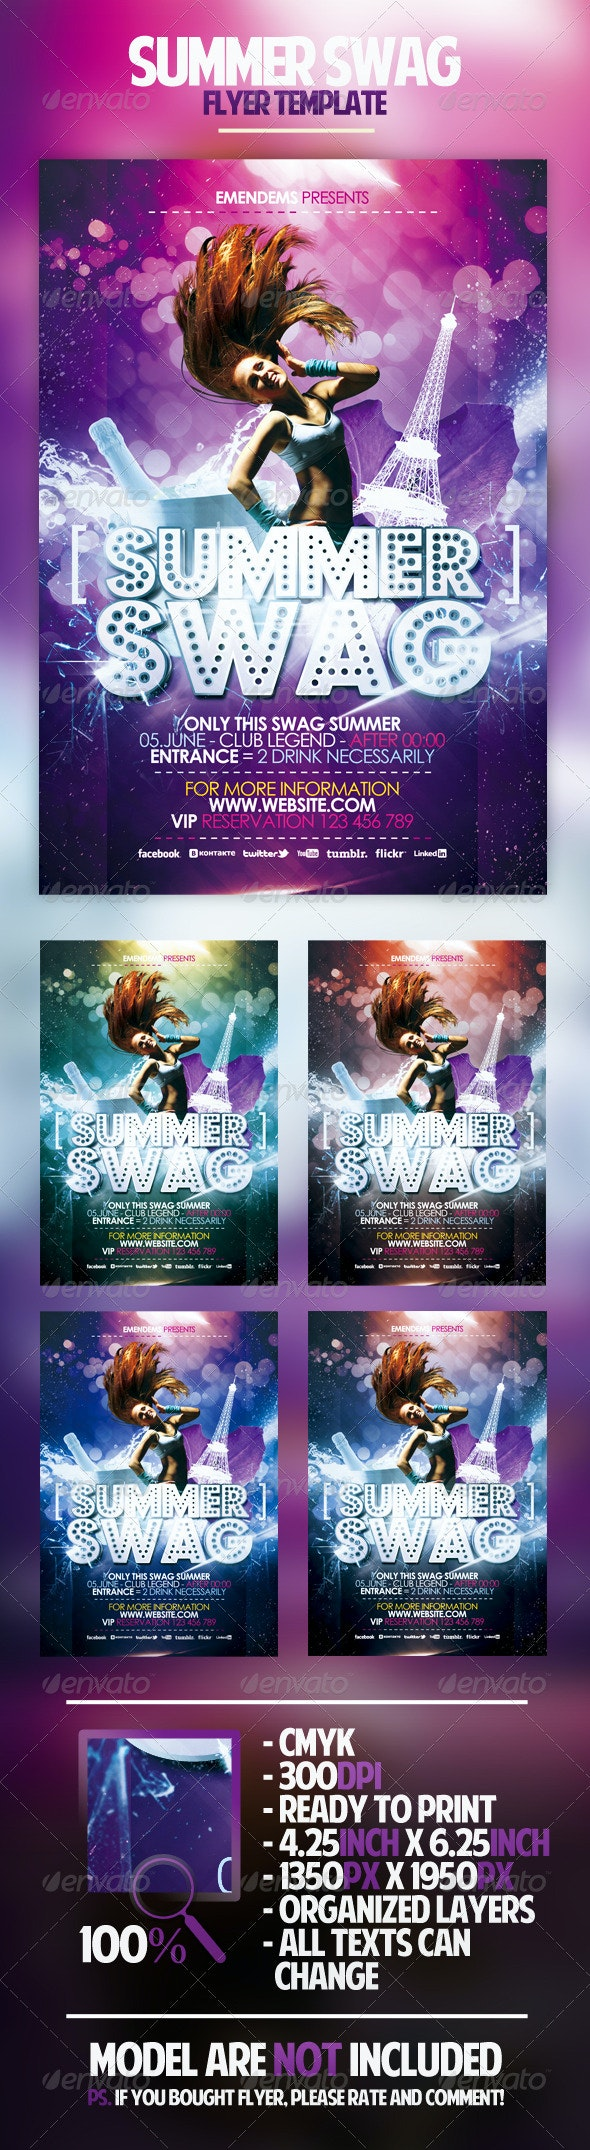 Summer Swag Flyer Template - Clubs & Parties Events